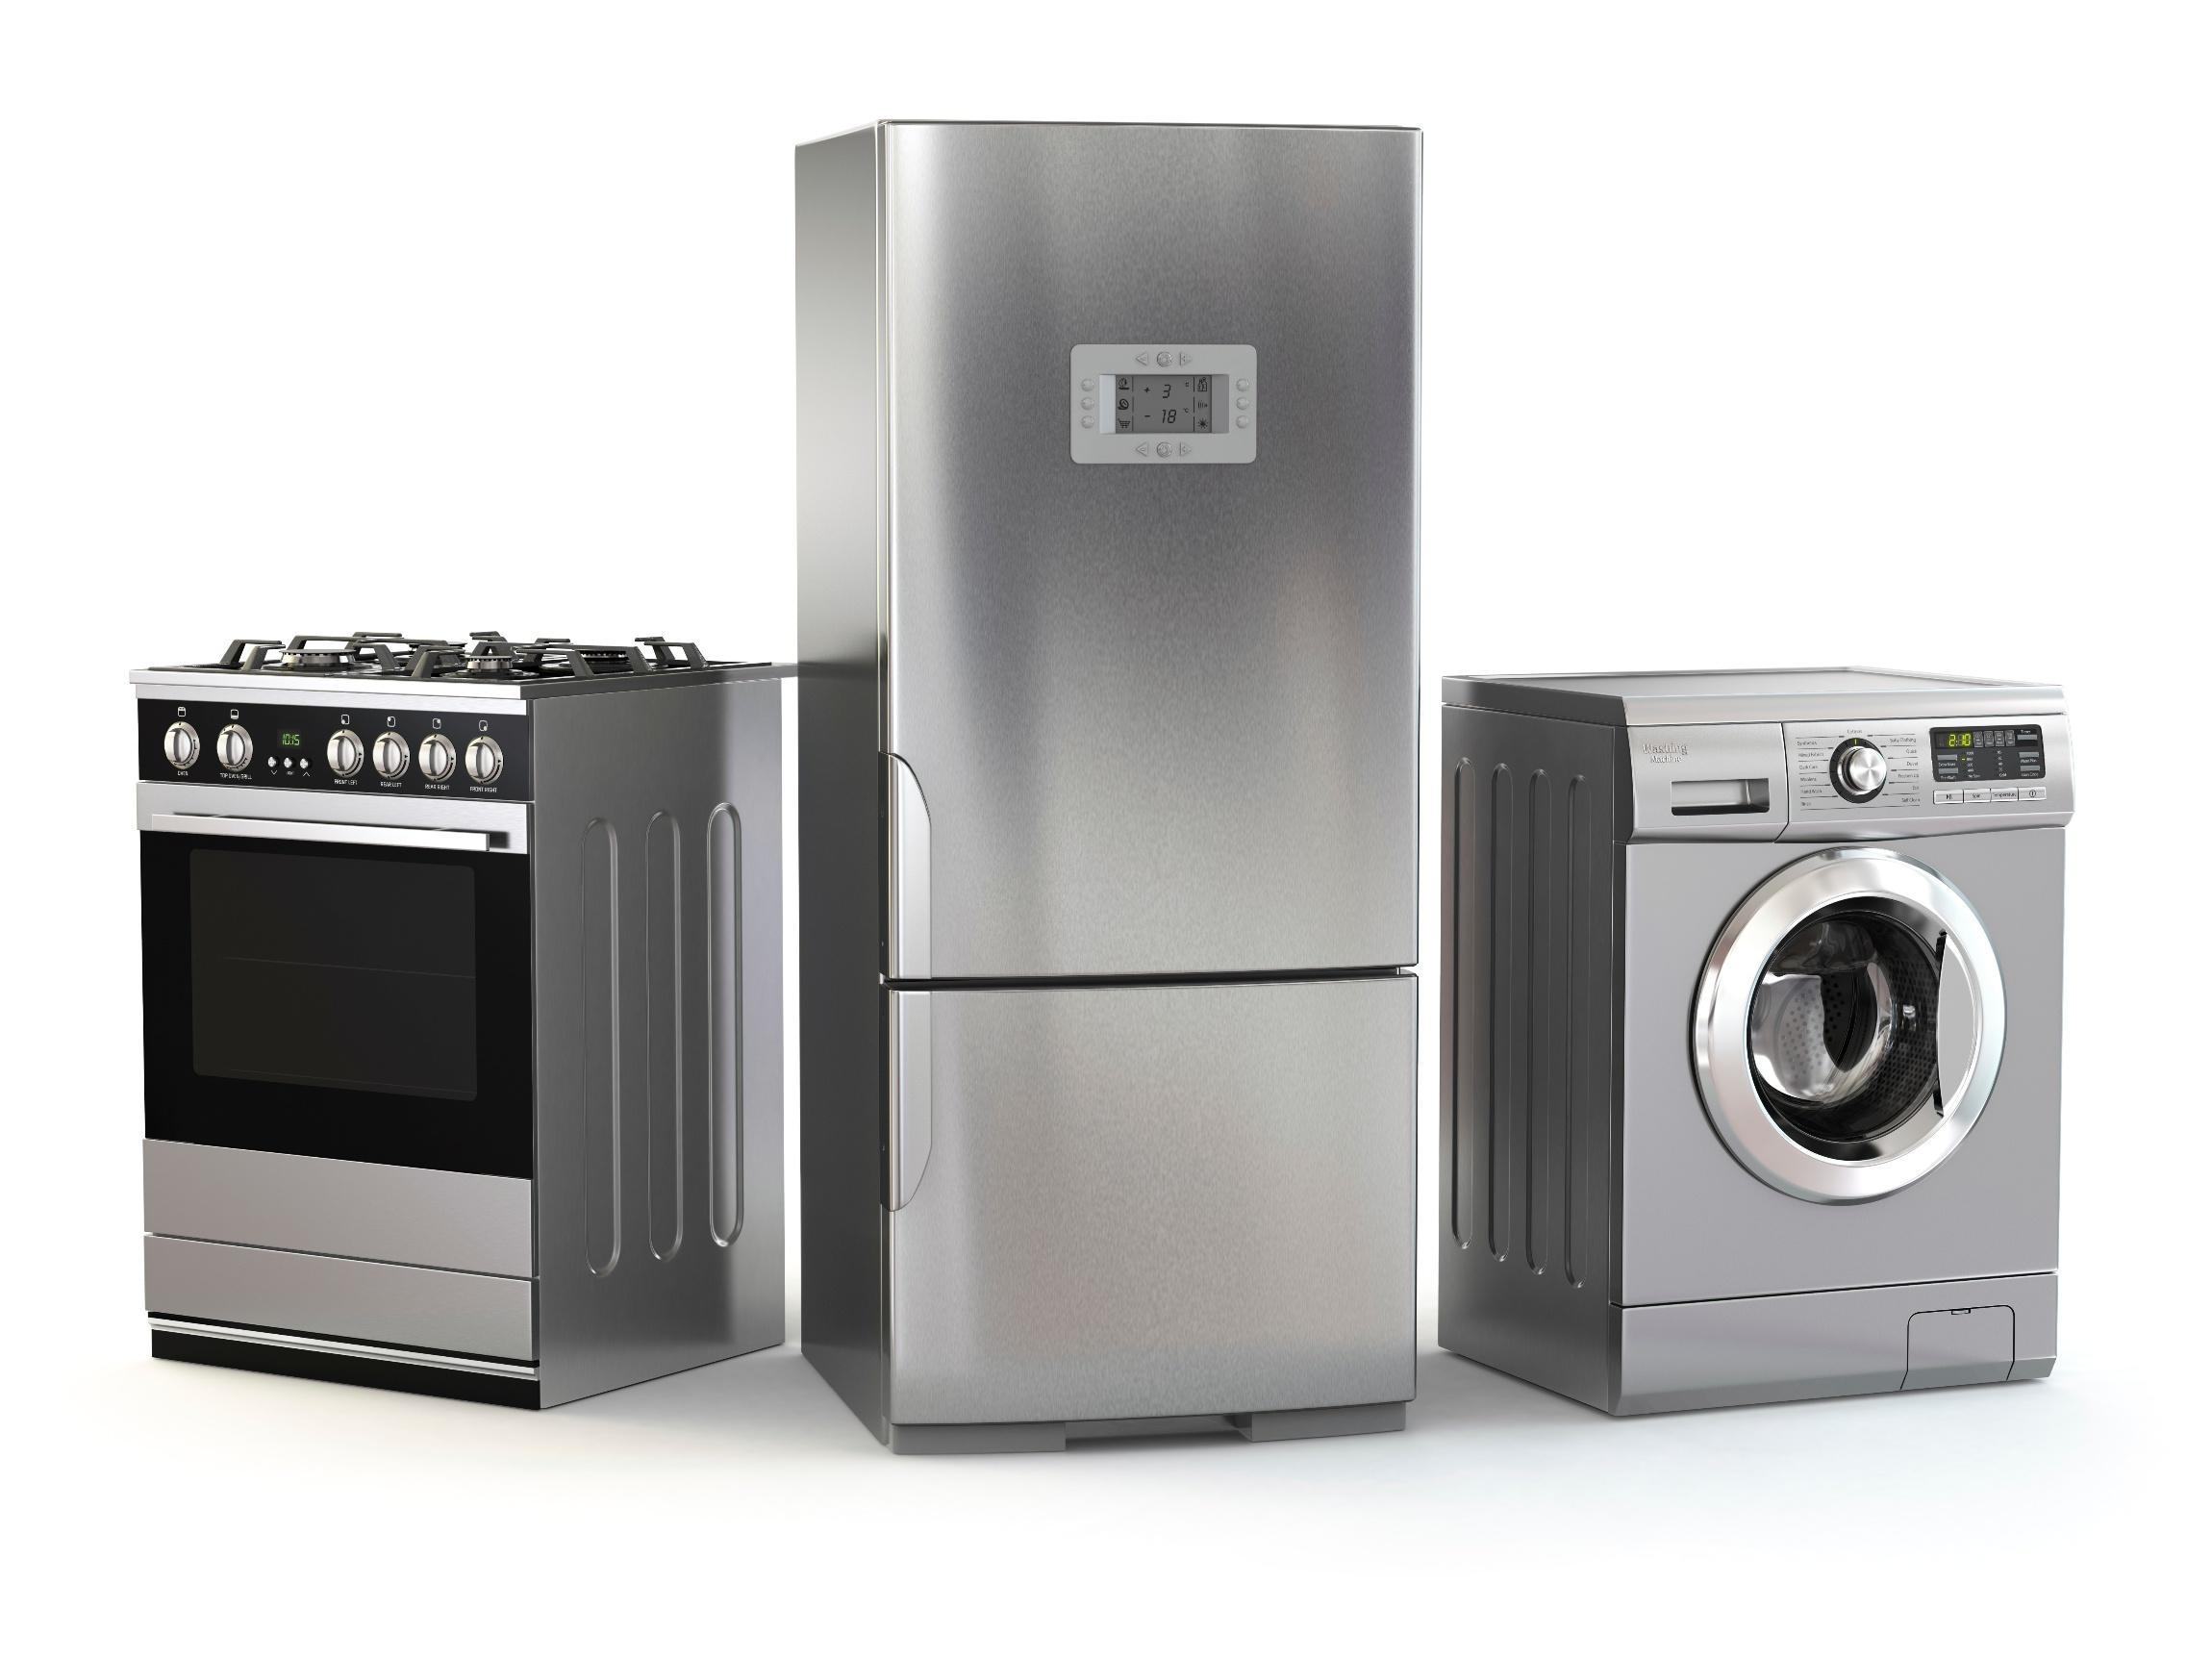 Home appliances in our life